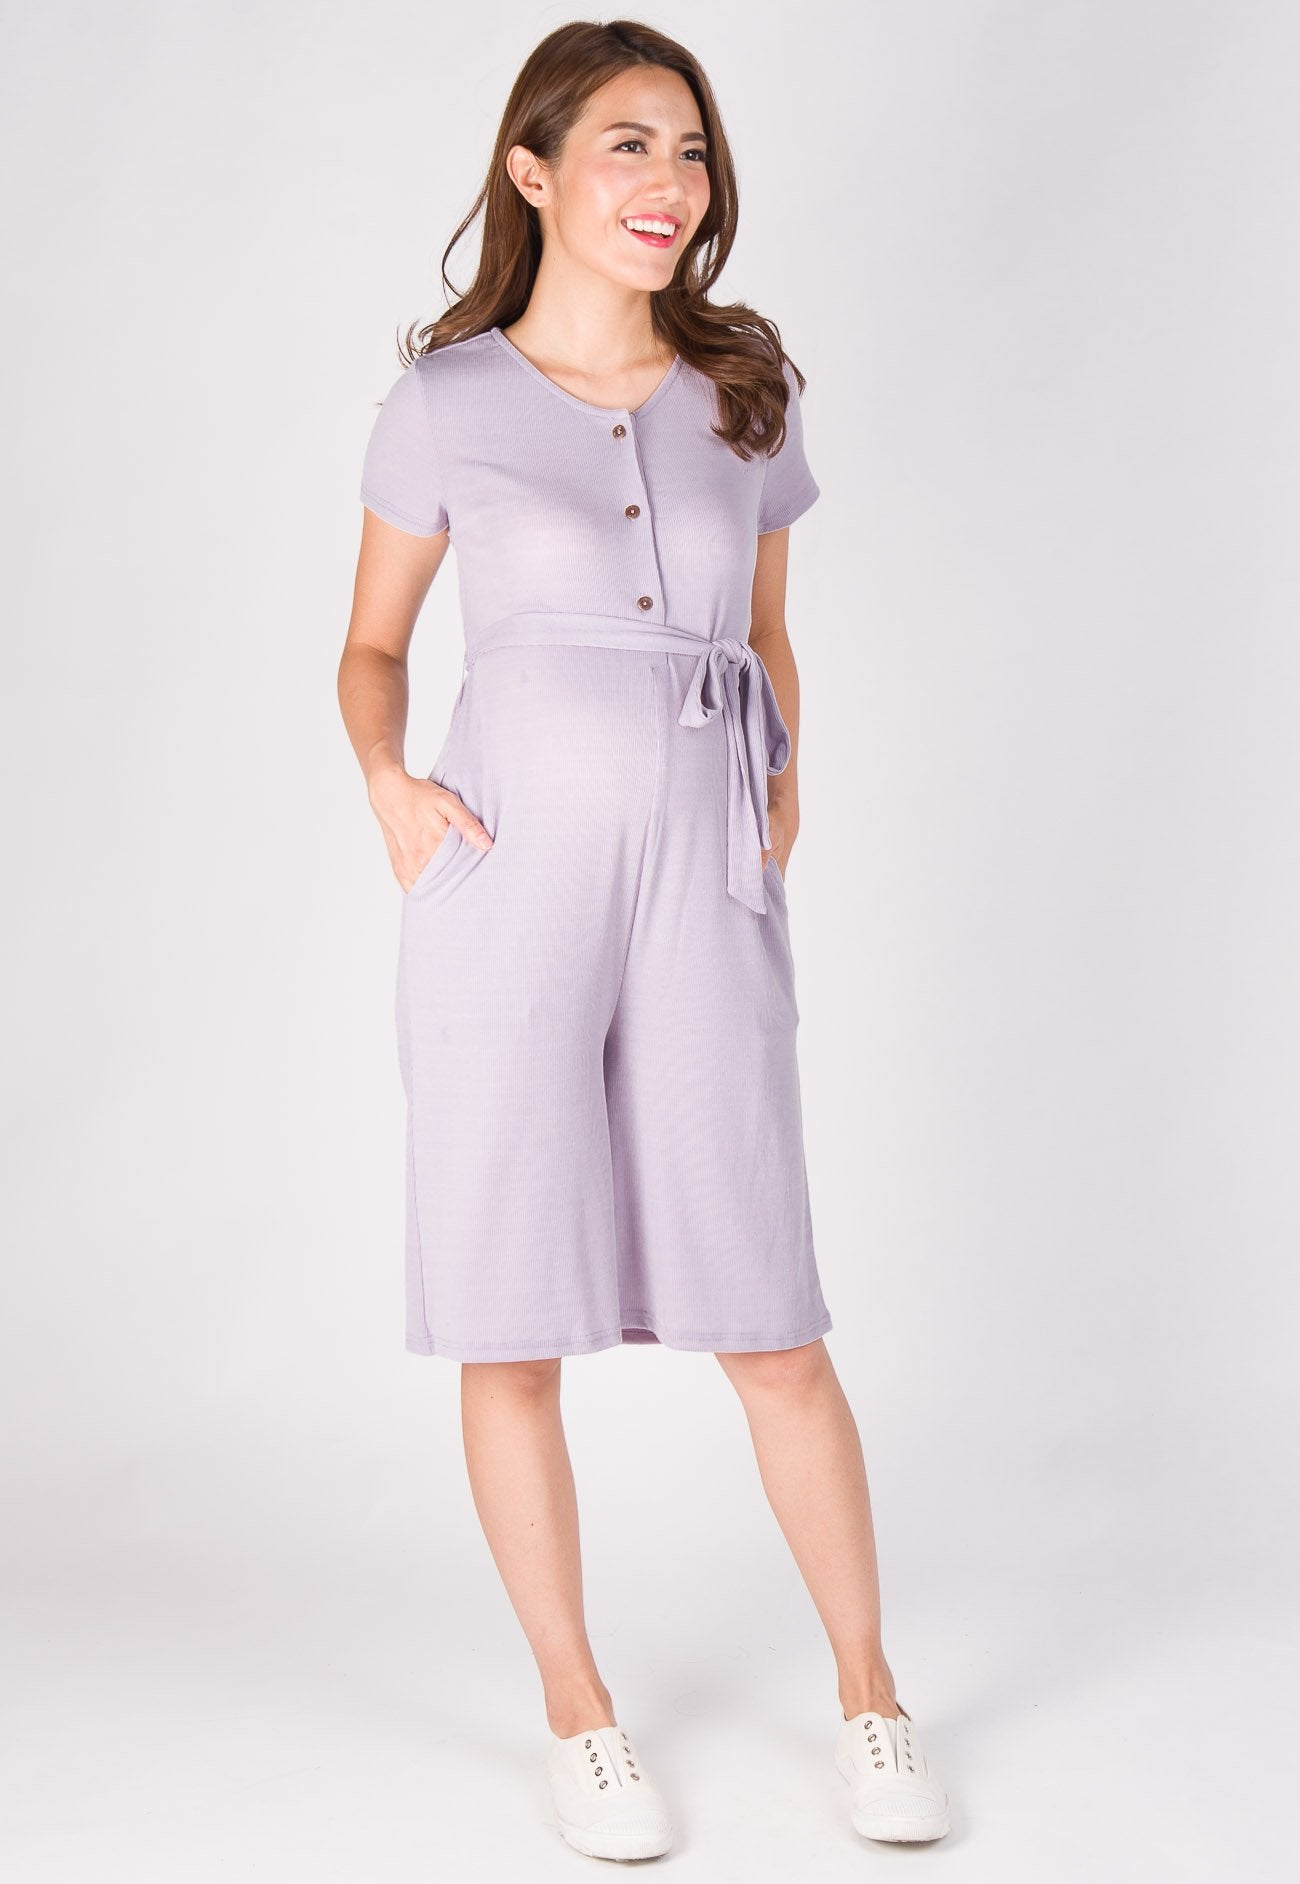 Lucy Knitted Nursing Jumpsuit in Purple  by Jump Eat Cry - Maternity and nursing wear